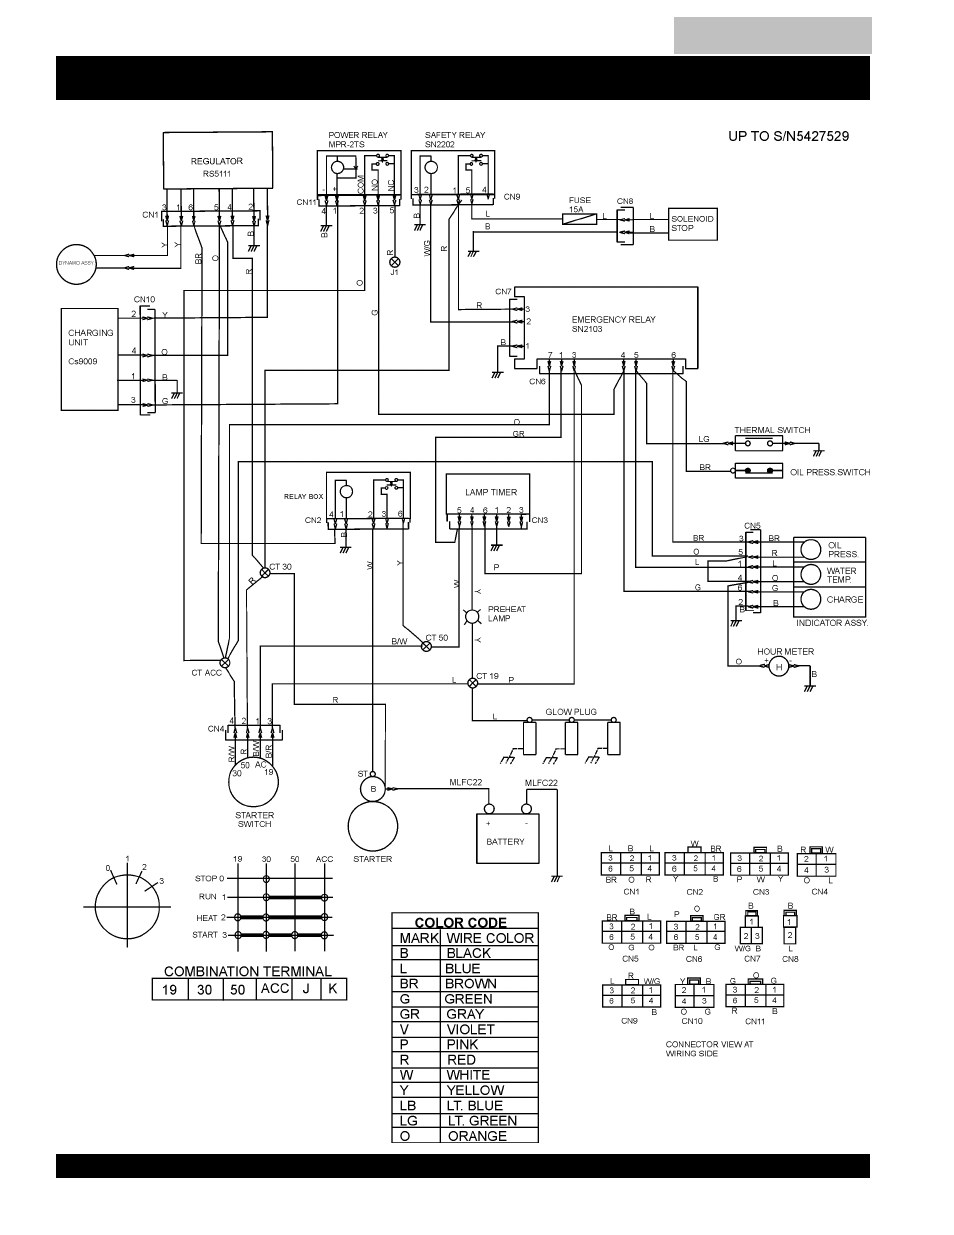 hight resolution of engine wiring diagrams 41 blw 400ssw engine wiring diagram multiquip mq